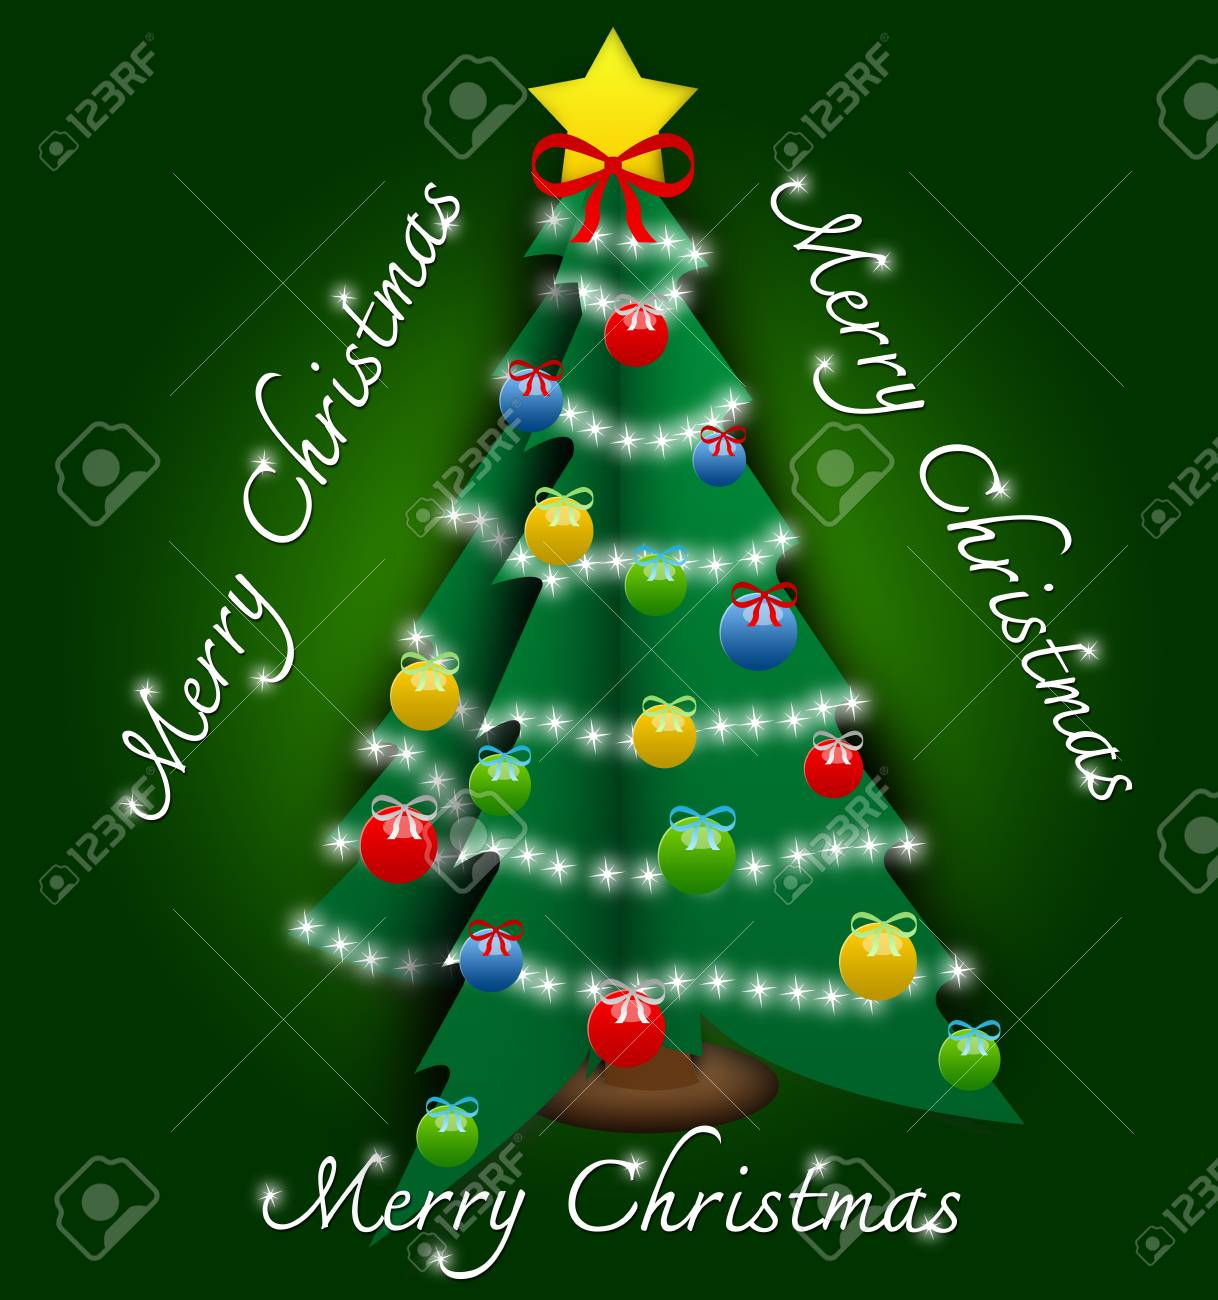 Pop Up Merry Christmas Card With Christmas Tree And Ornament Stock